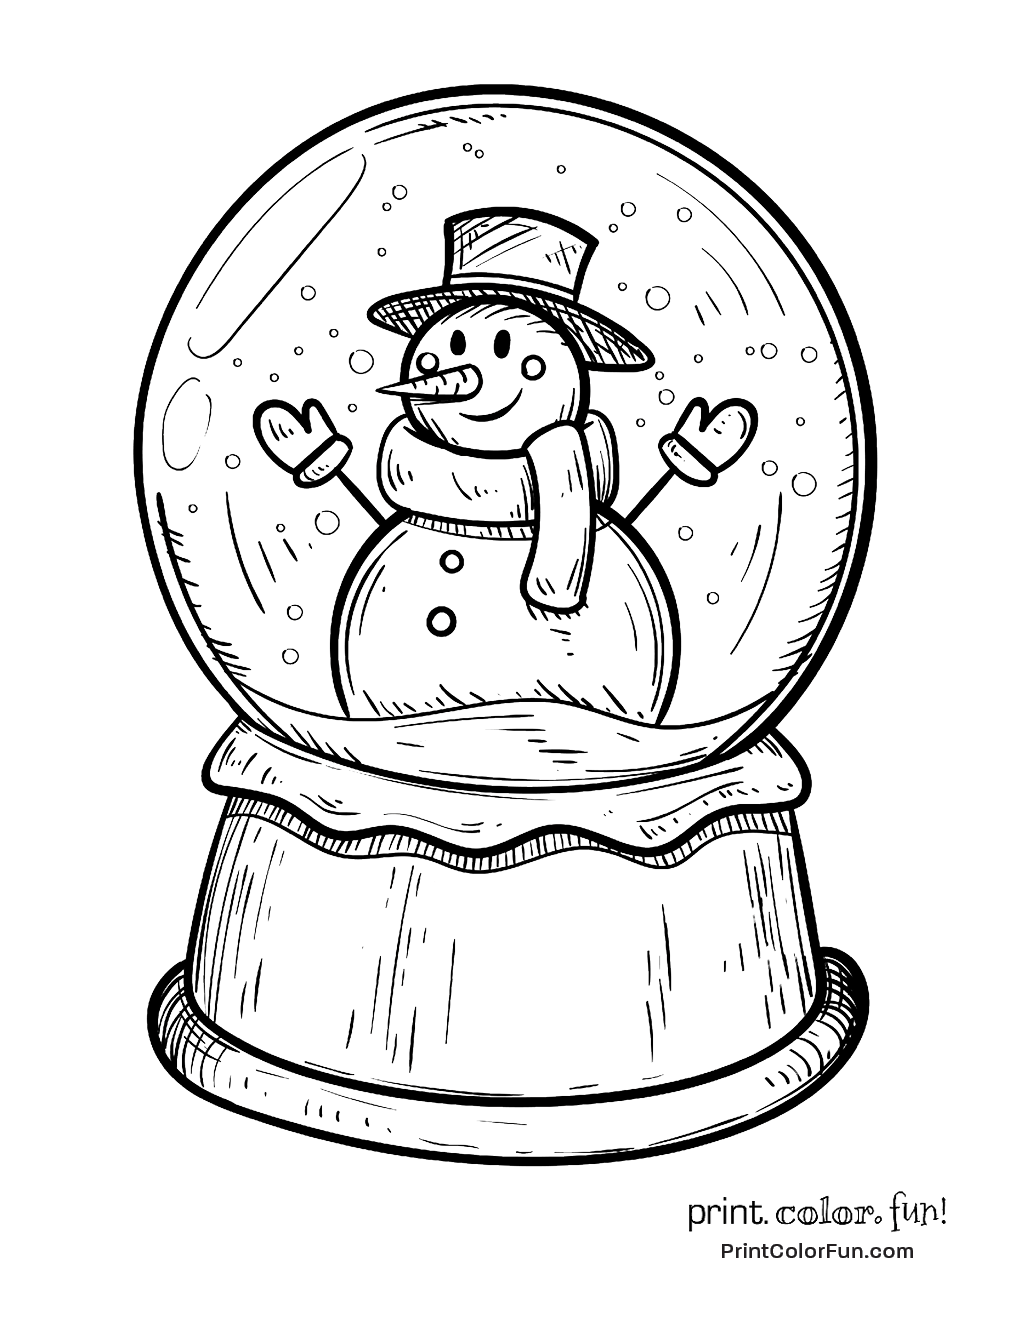 1020x1320 Winter Snow Globe With Snowman Coloring Page